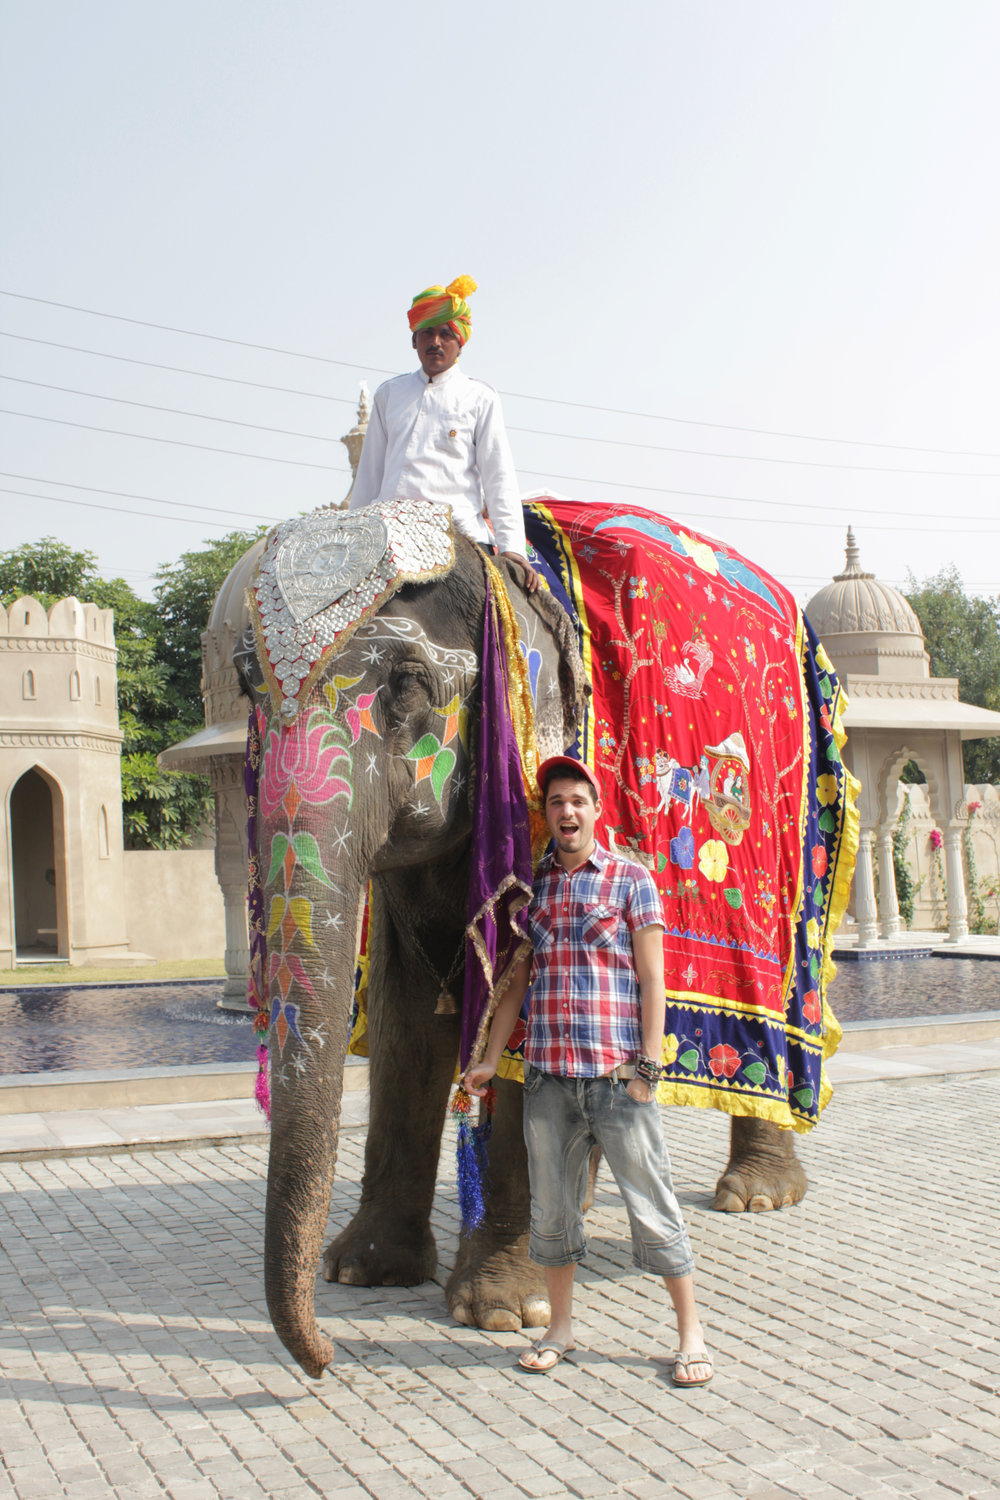 Our local model Nelly the elephant, and me (Jaipur, India).